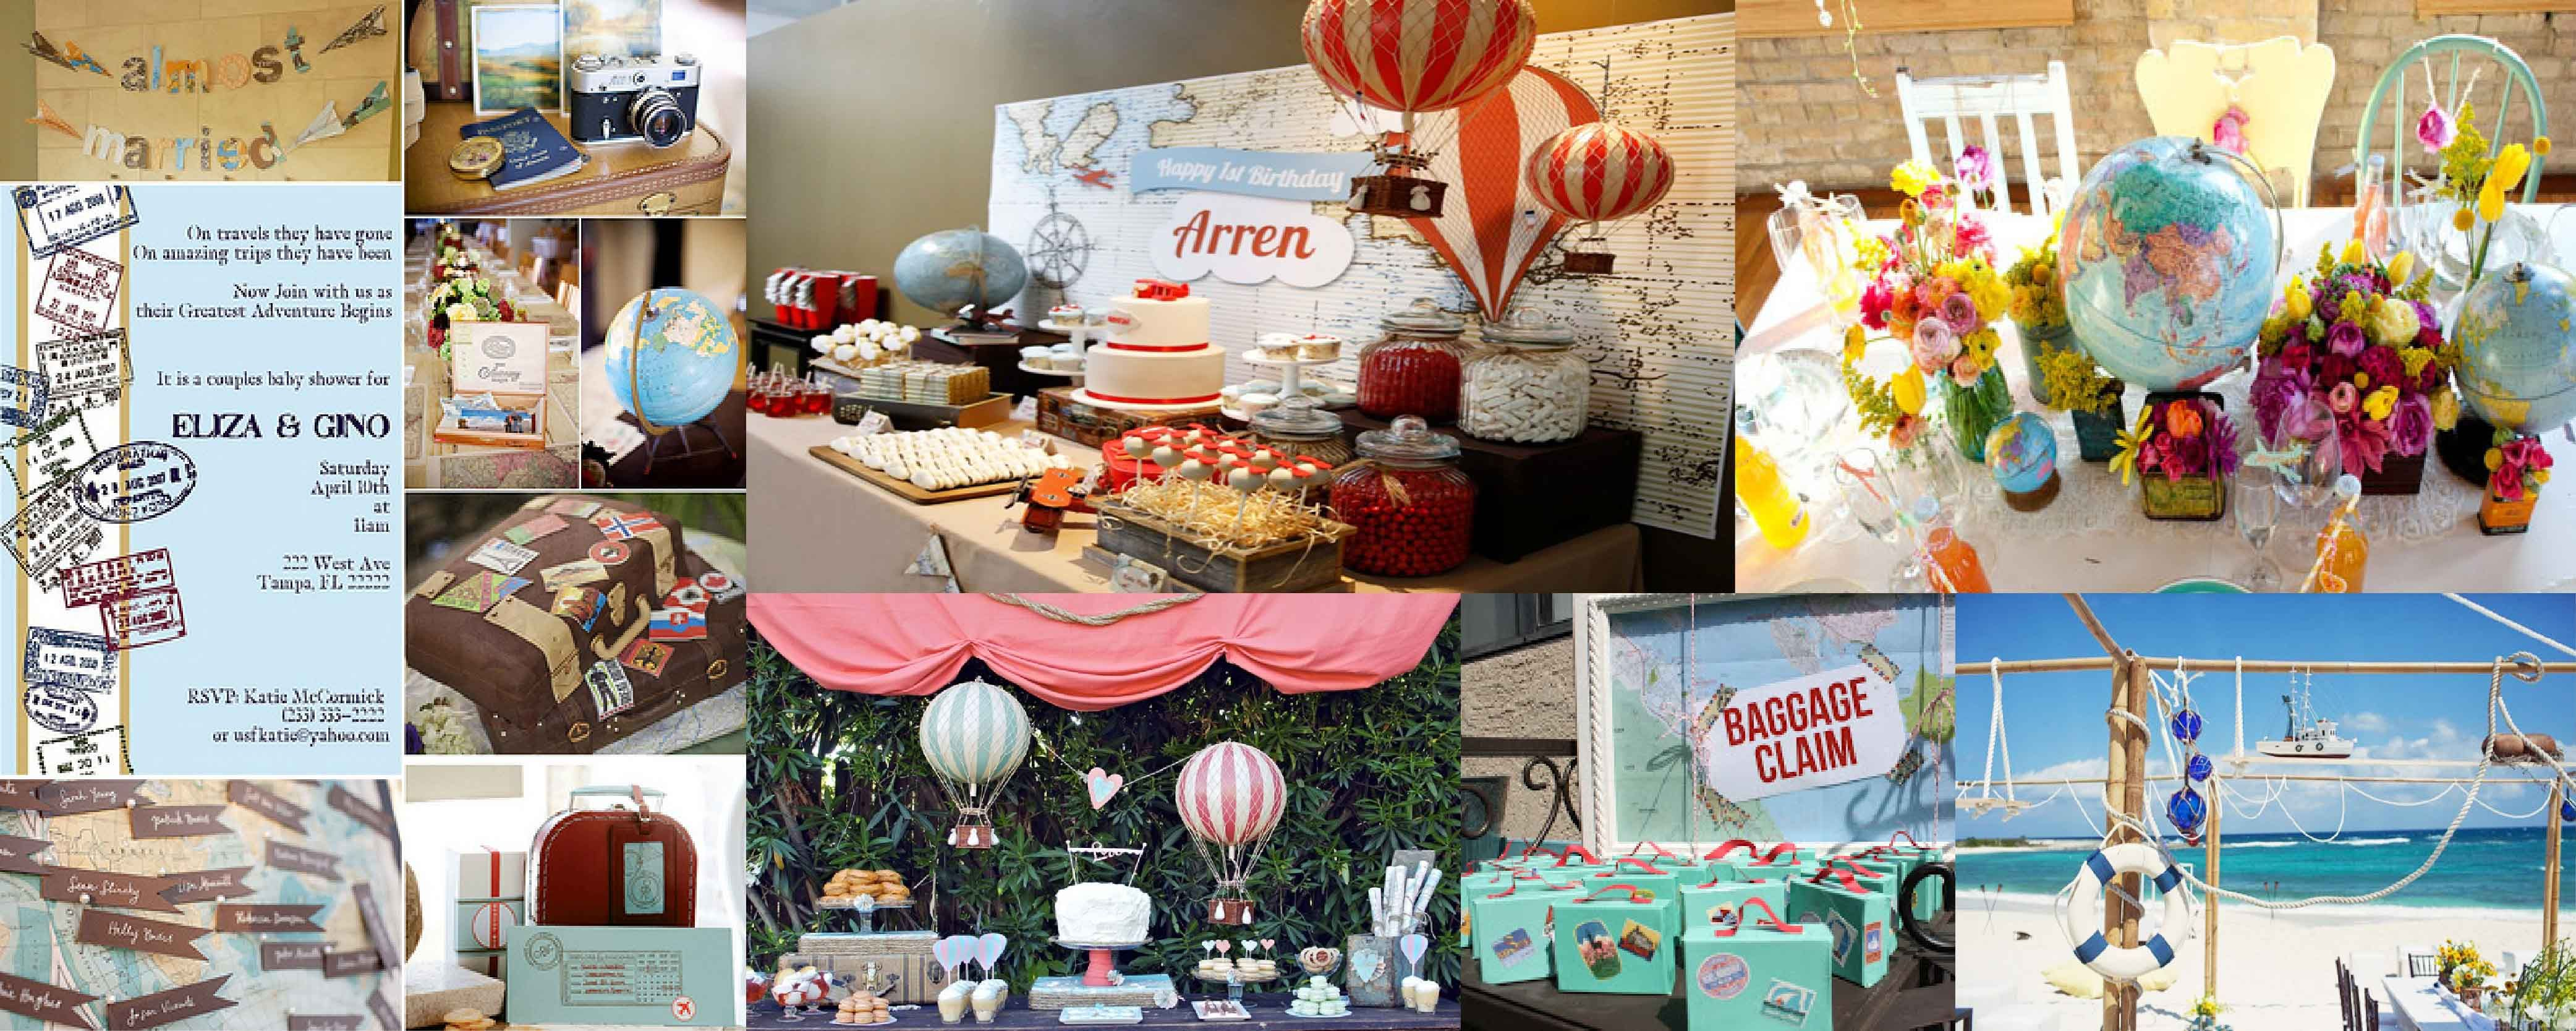 Good Christmas Around The World Party Ideas Part - 4: Around The World Birthday | Special-around-the-world-party-decorations